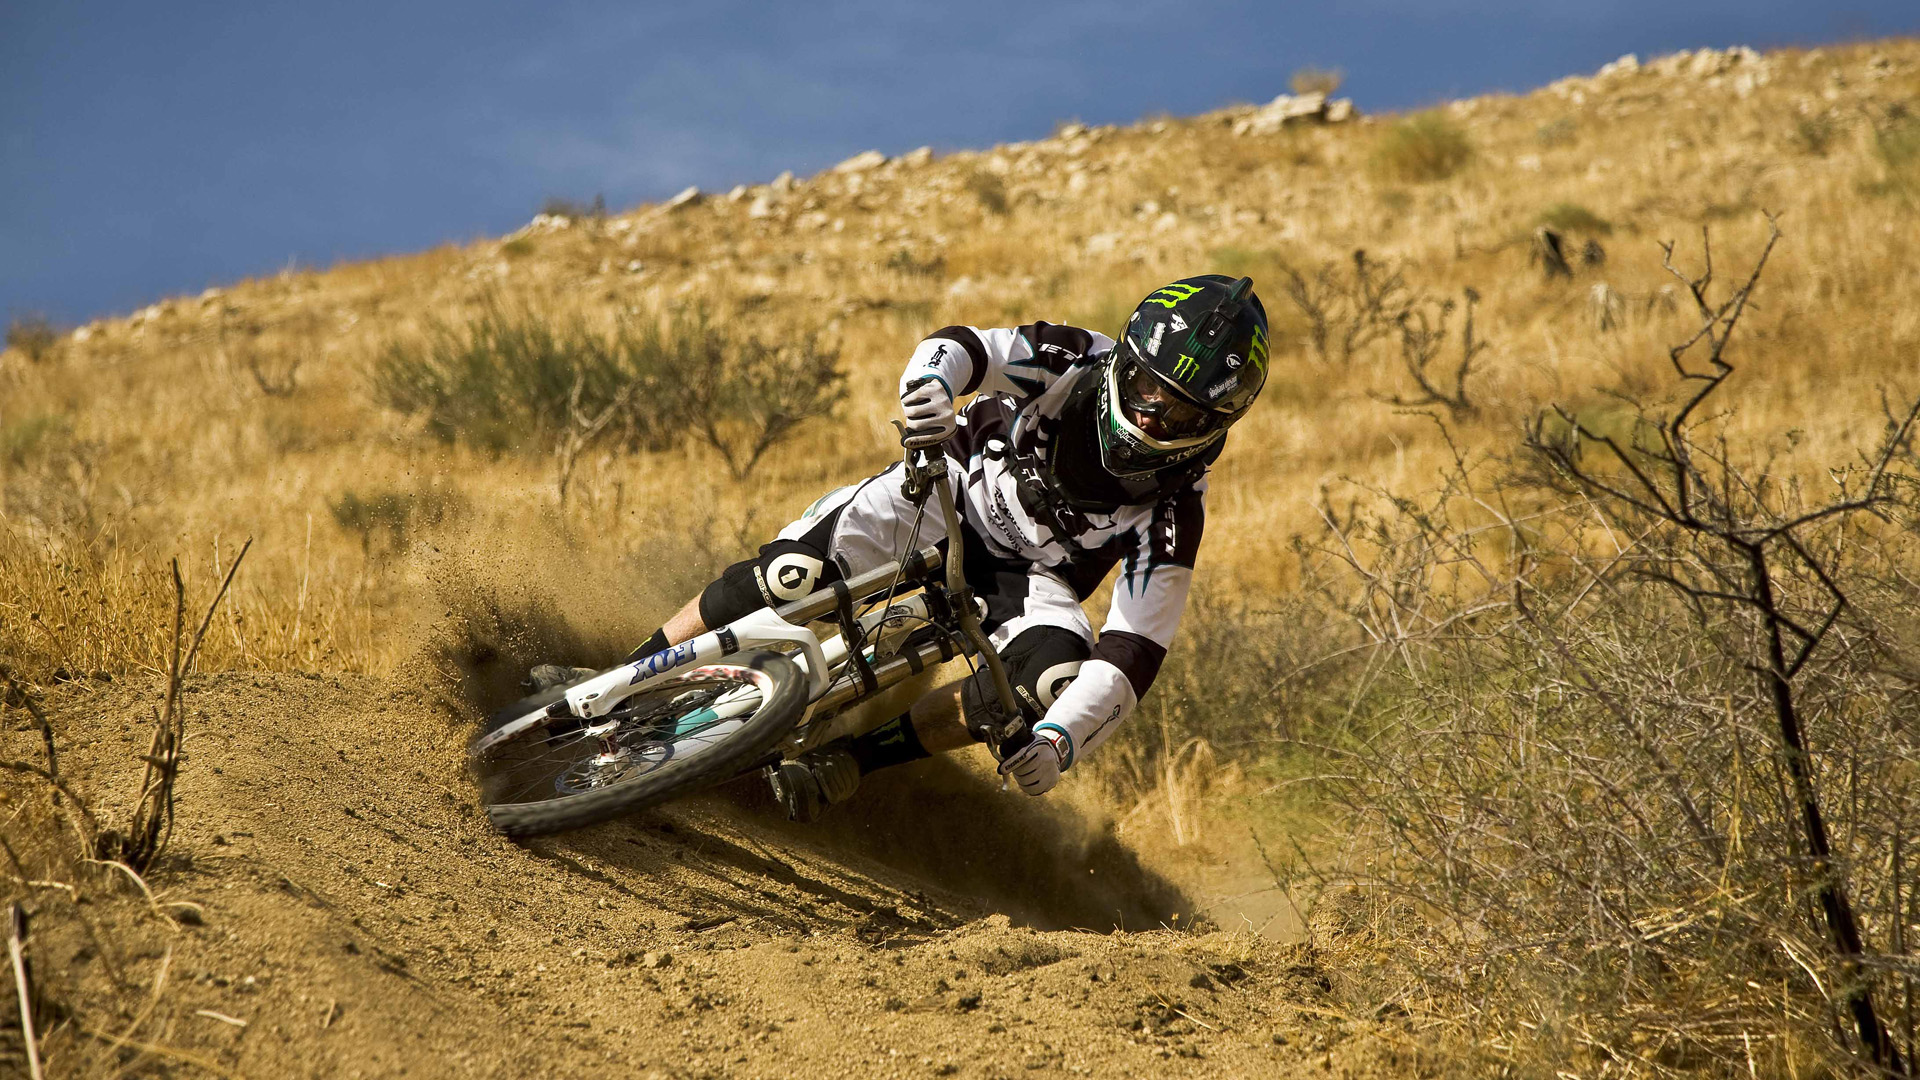 Bicycle Sports Dirty Image HD